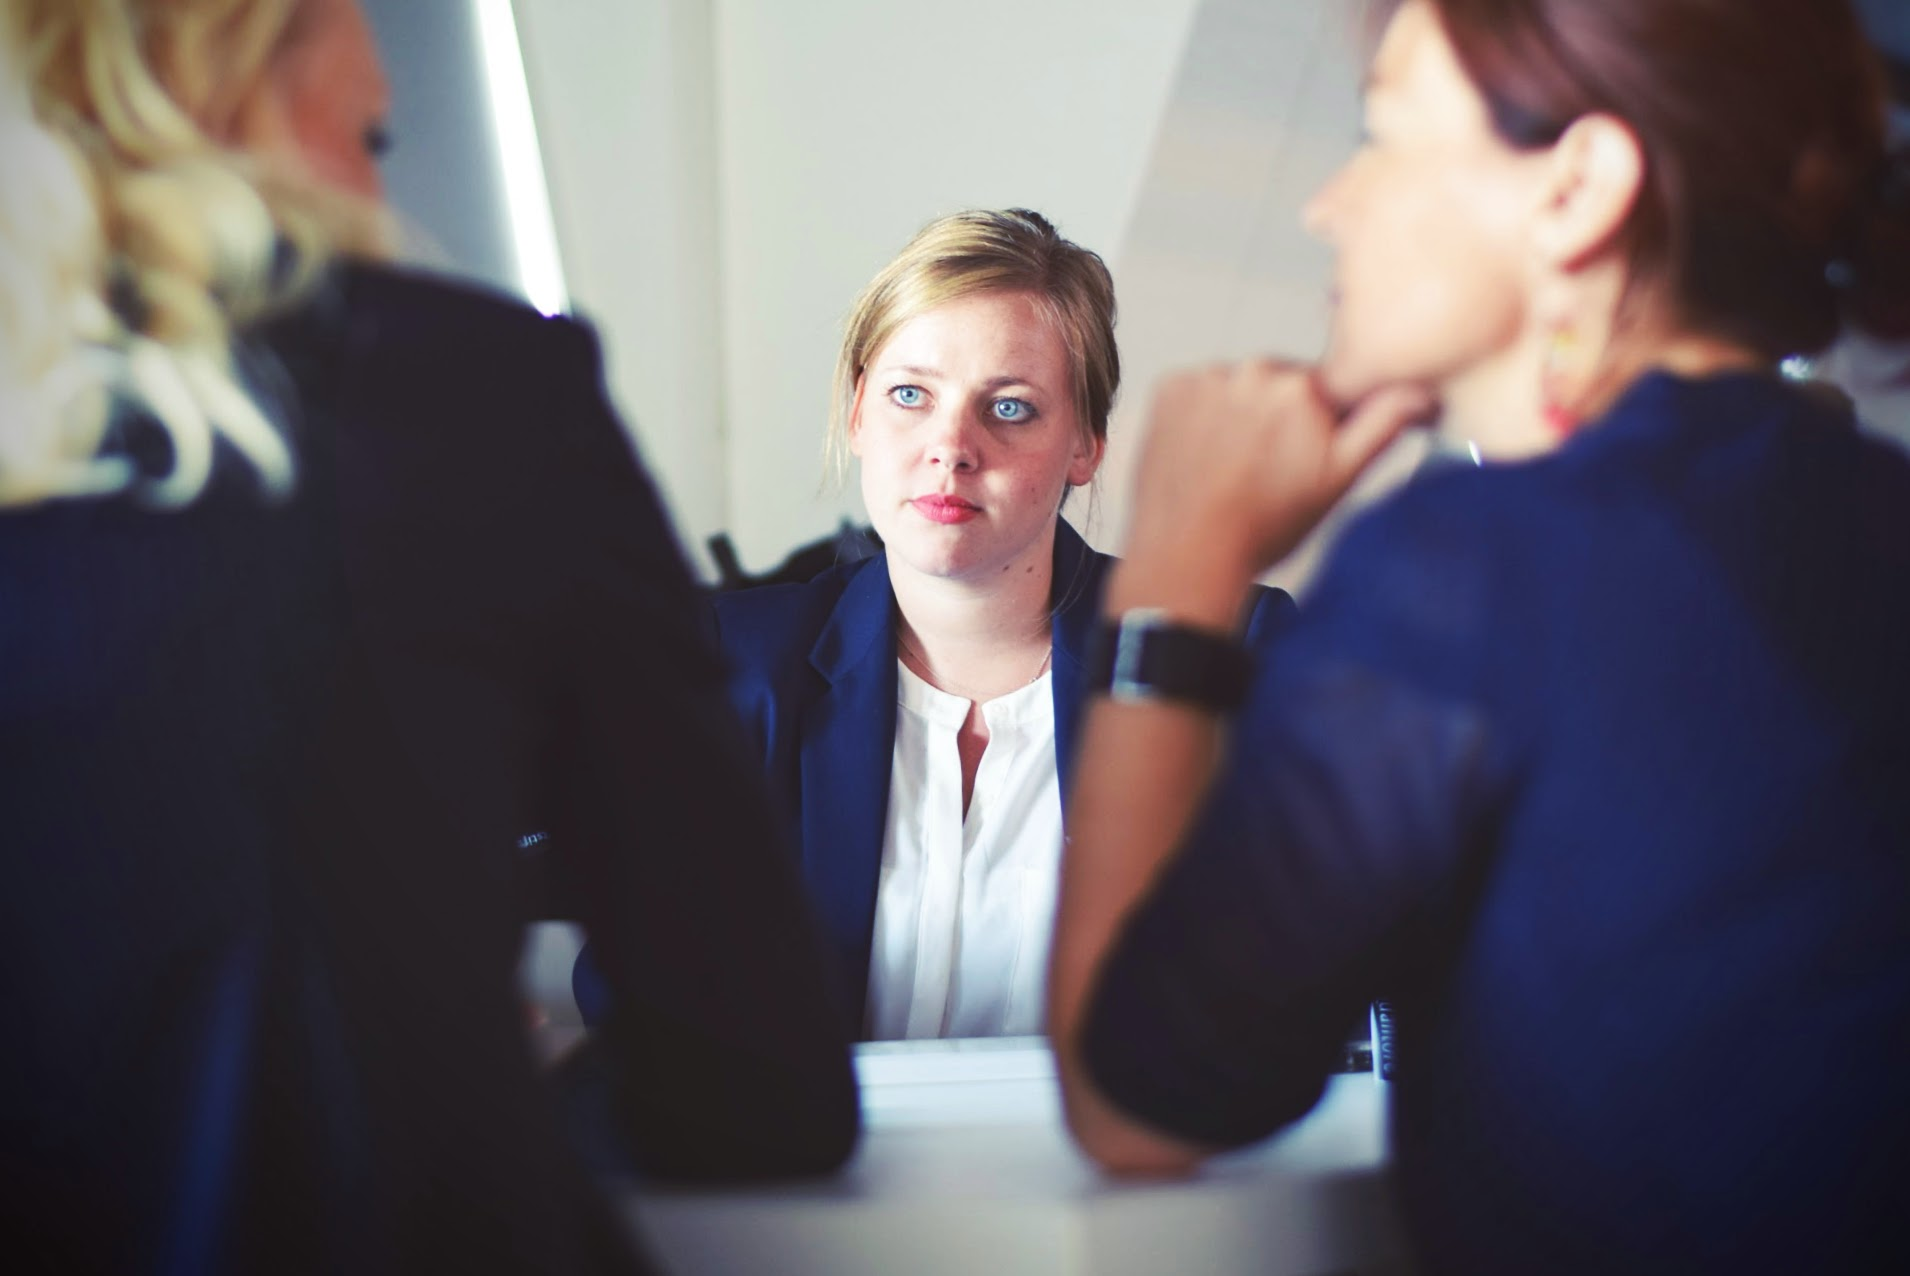 Do We Still Need Humans for Human Resources?